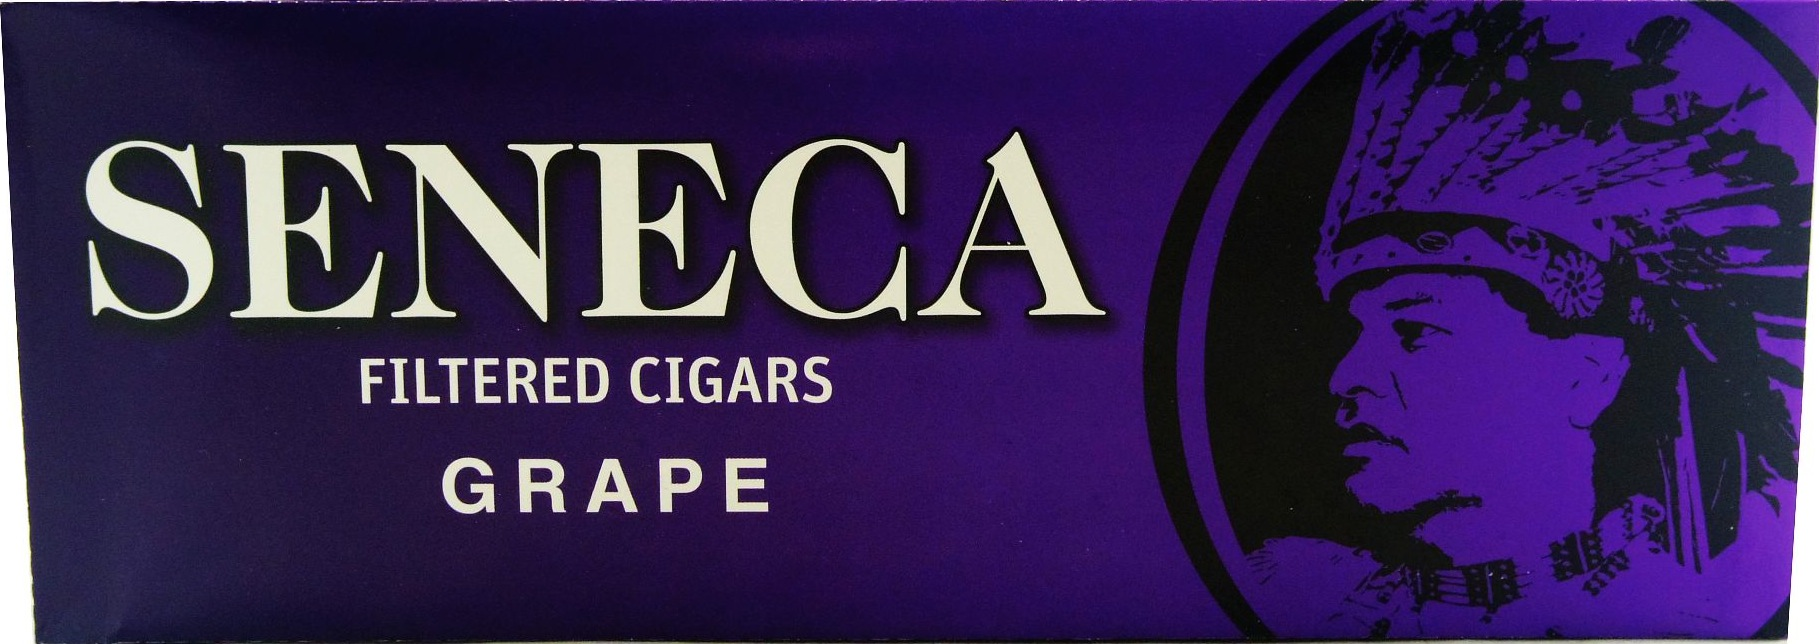 SENECA GRAPE LITTLE CIGAR